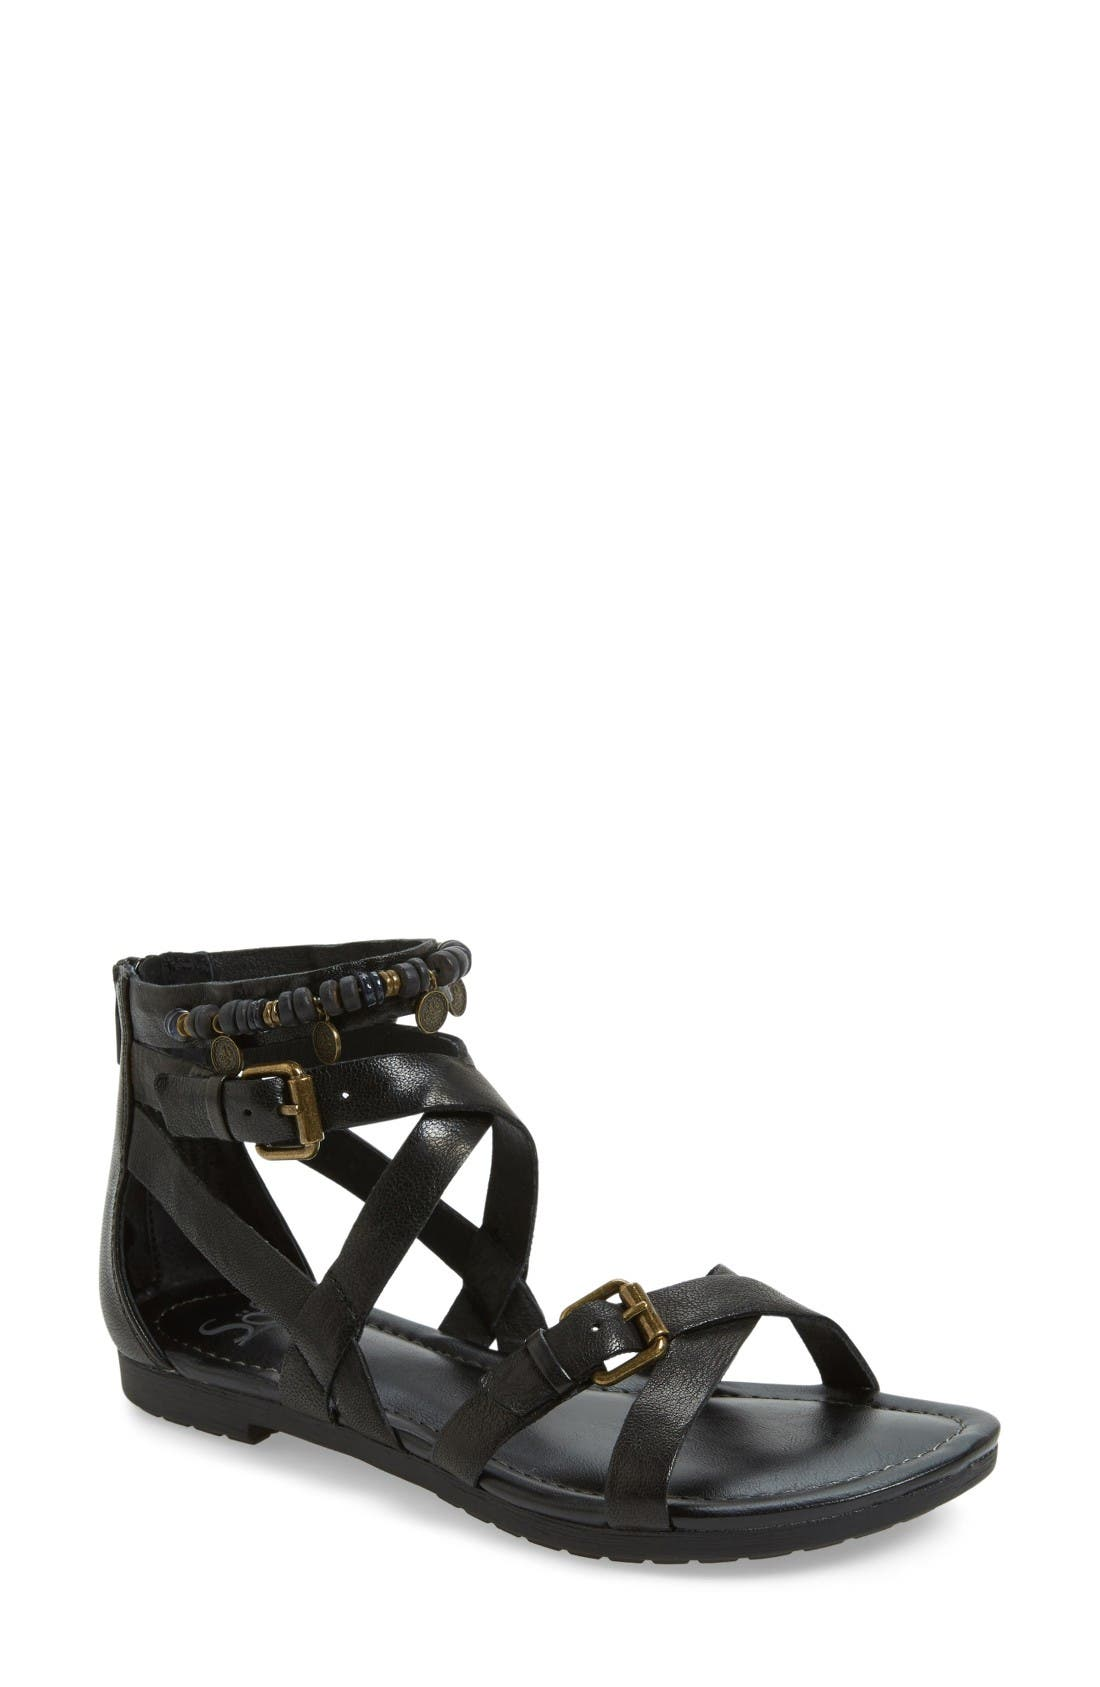 Boca Caged Sandal,                             Main thumbnail 1, color,                             Black Leather